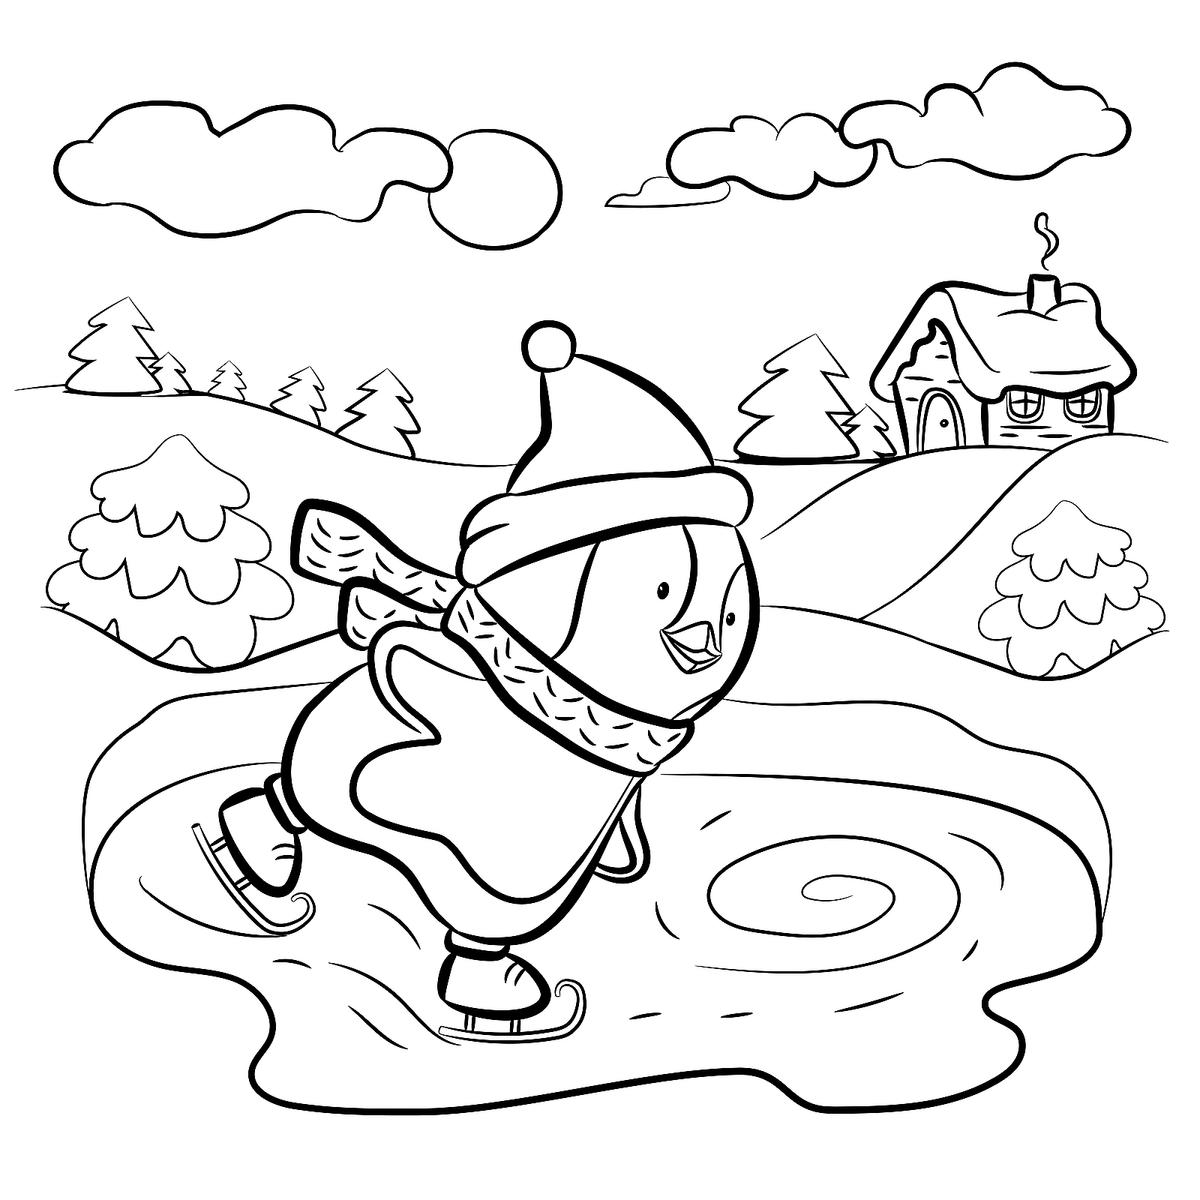 winter coloring sheets printable winter season coloring pages crafts and worksheets for printable coloring winter sheets